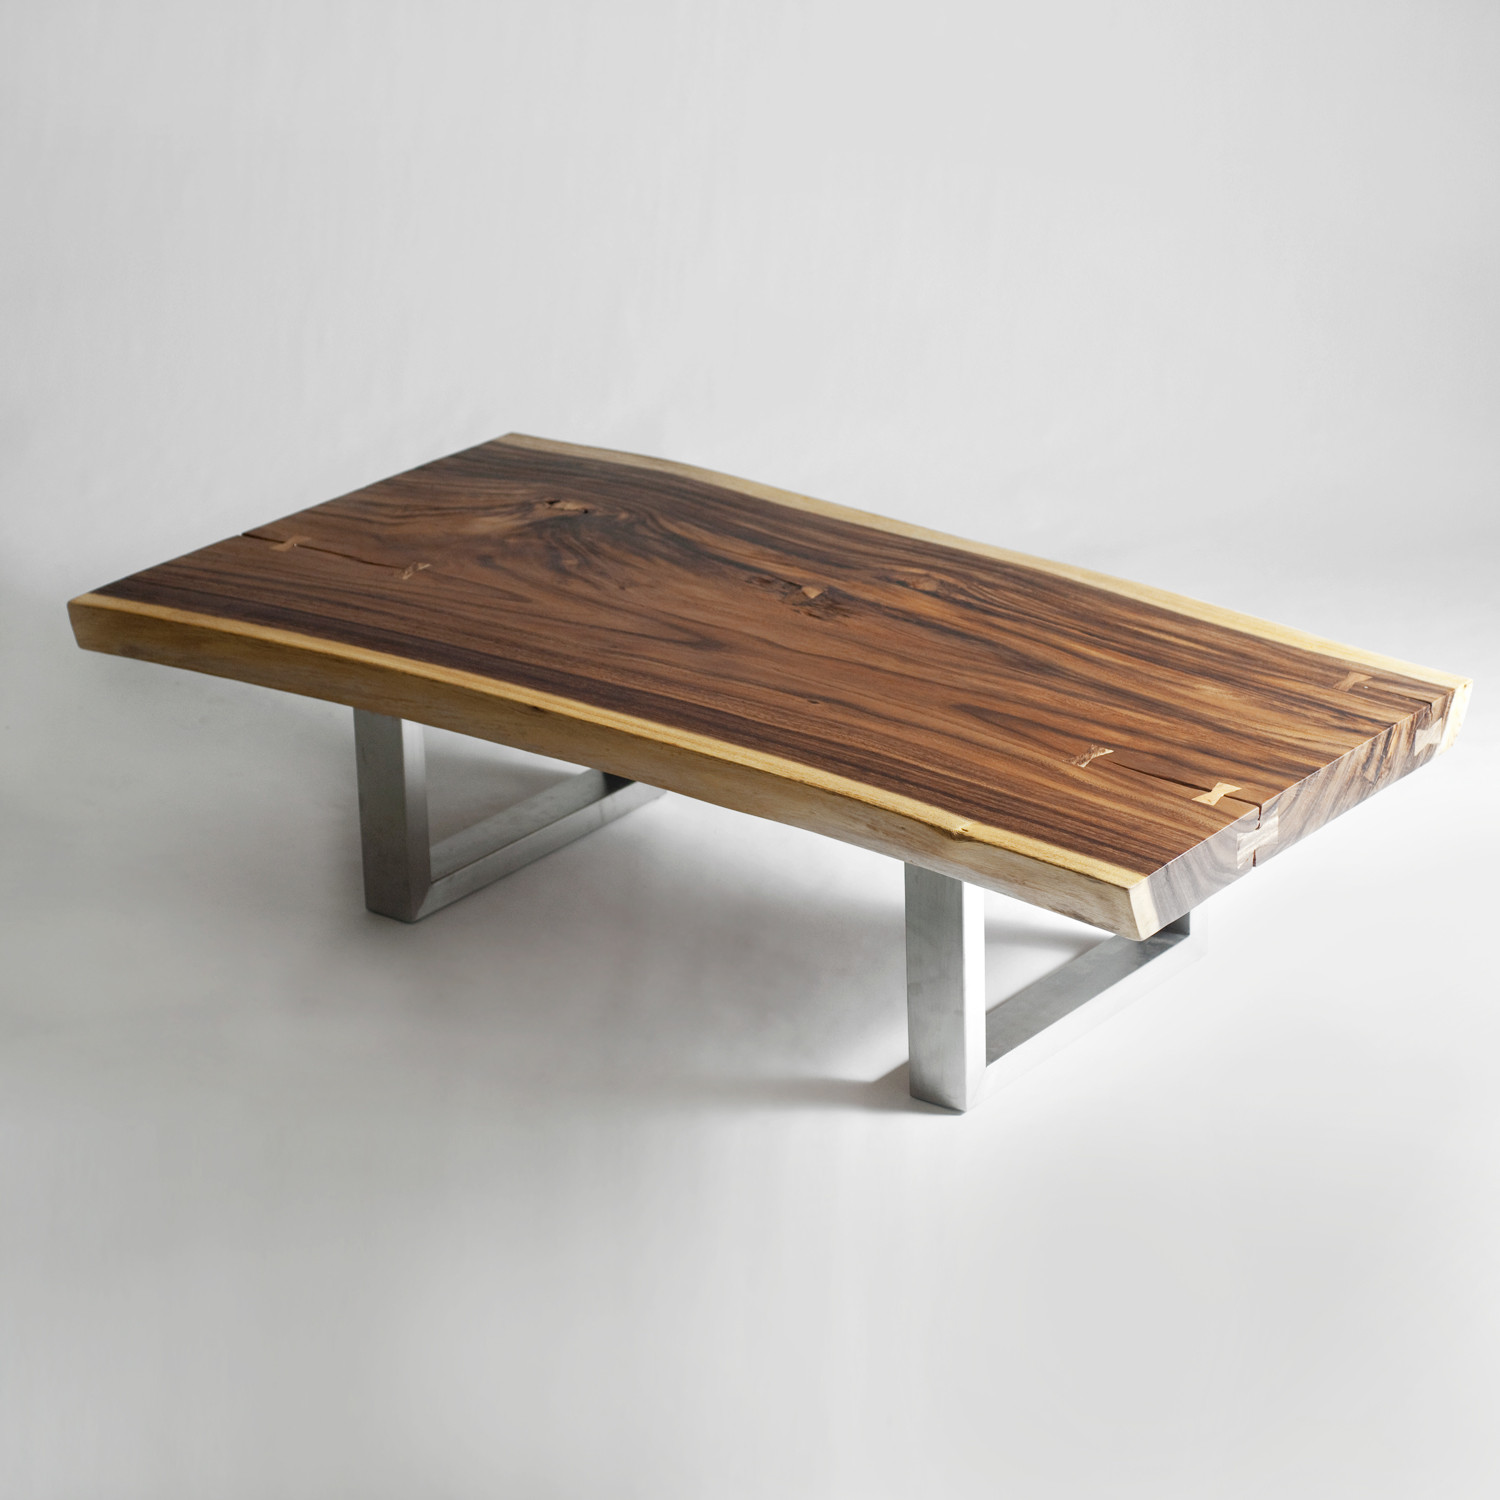 Freeform Coffee Table - Urbia Imports - Touch of Modern